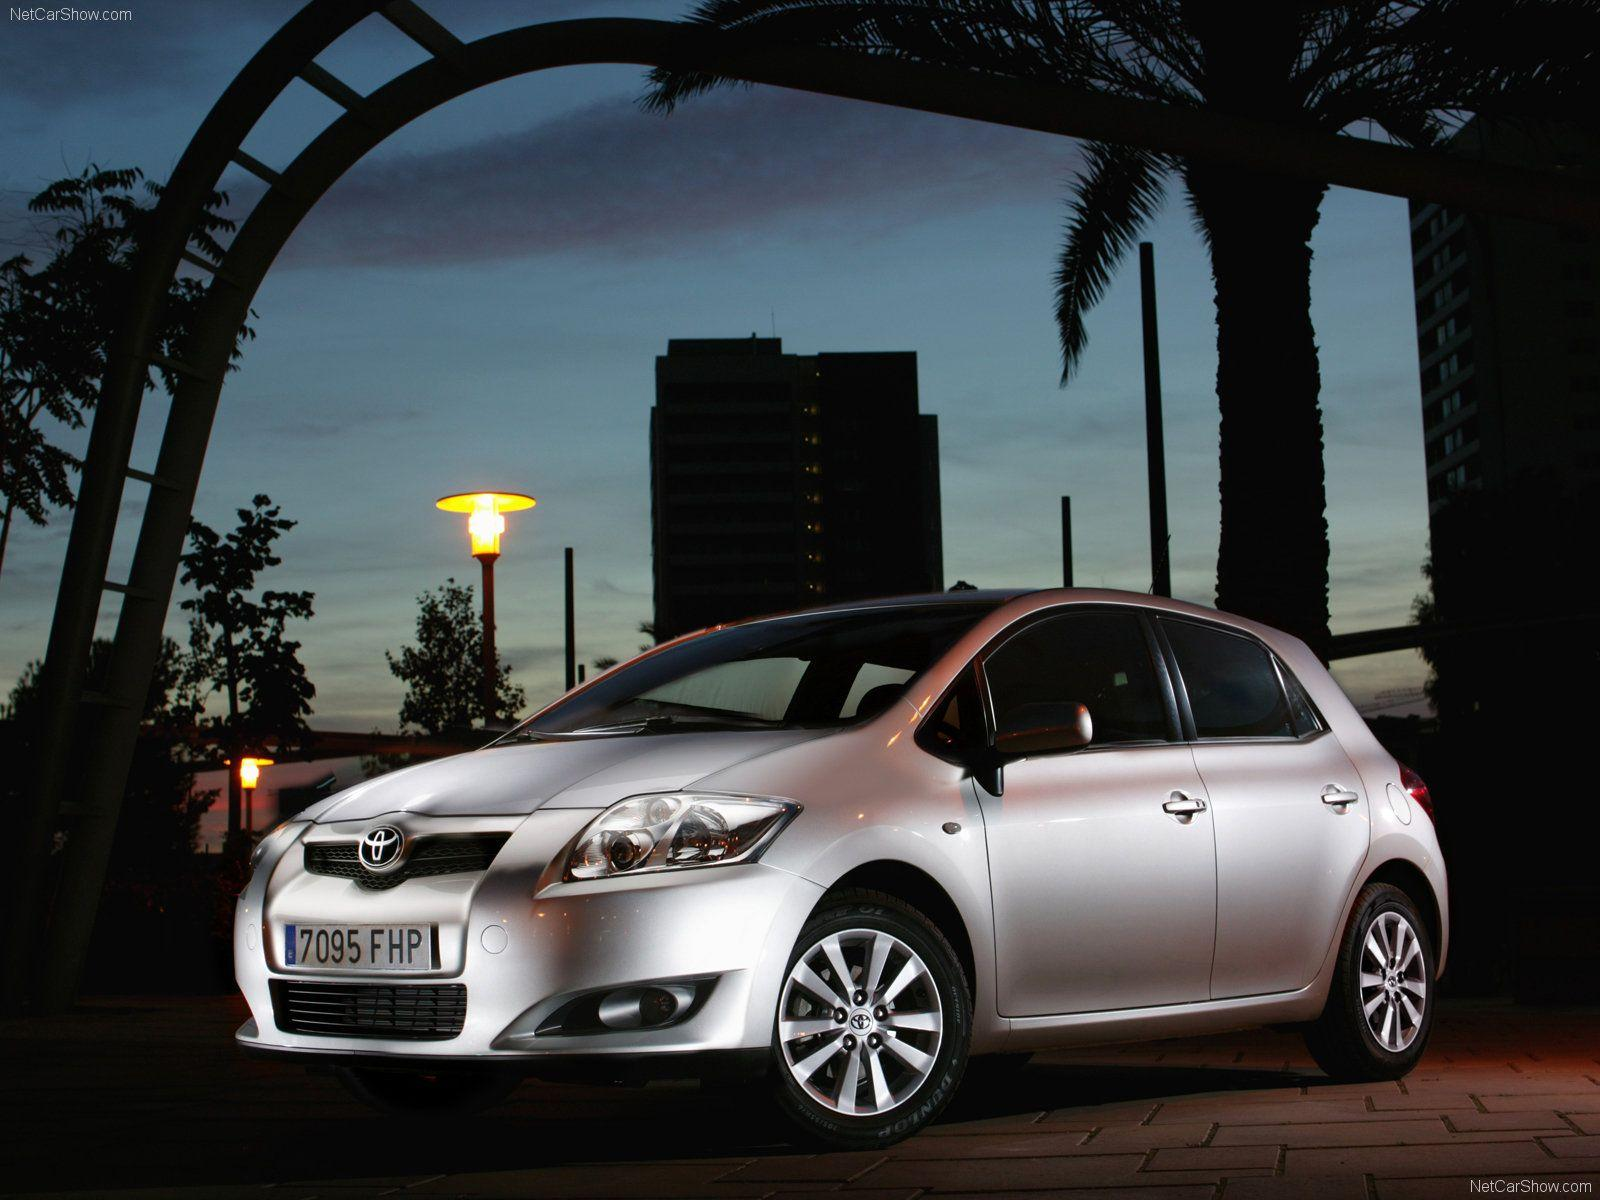 Toyota image Toyota Auris 2007 HD wallpapers and backgrounds photos